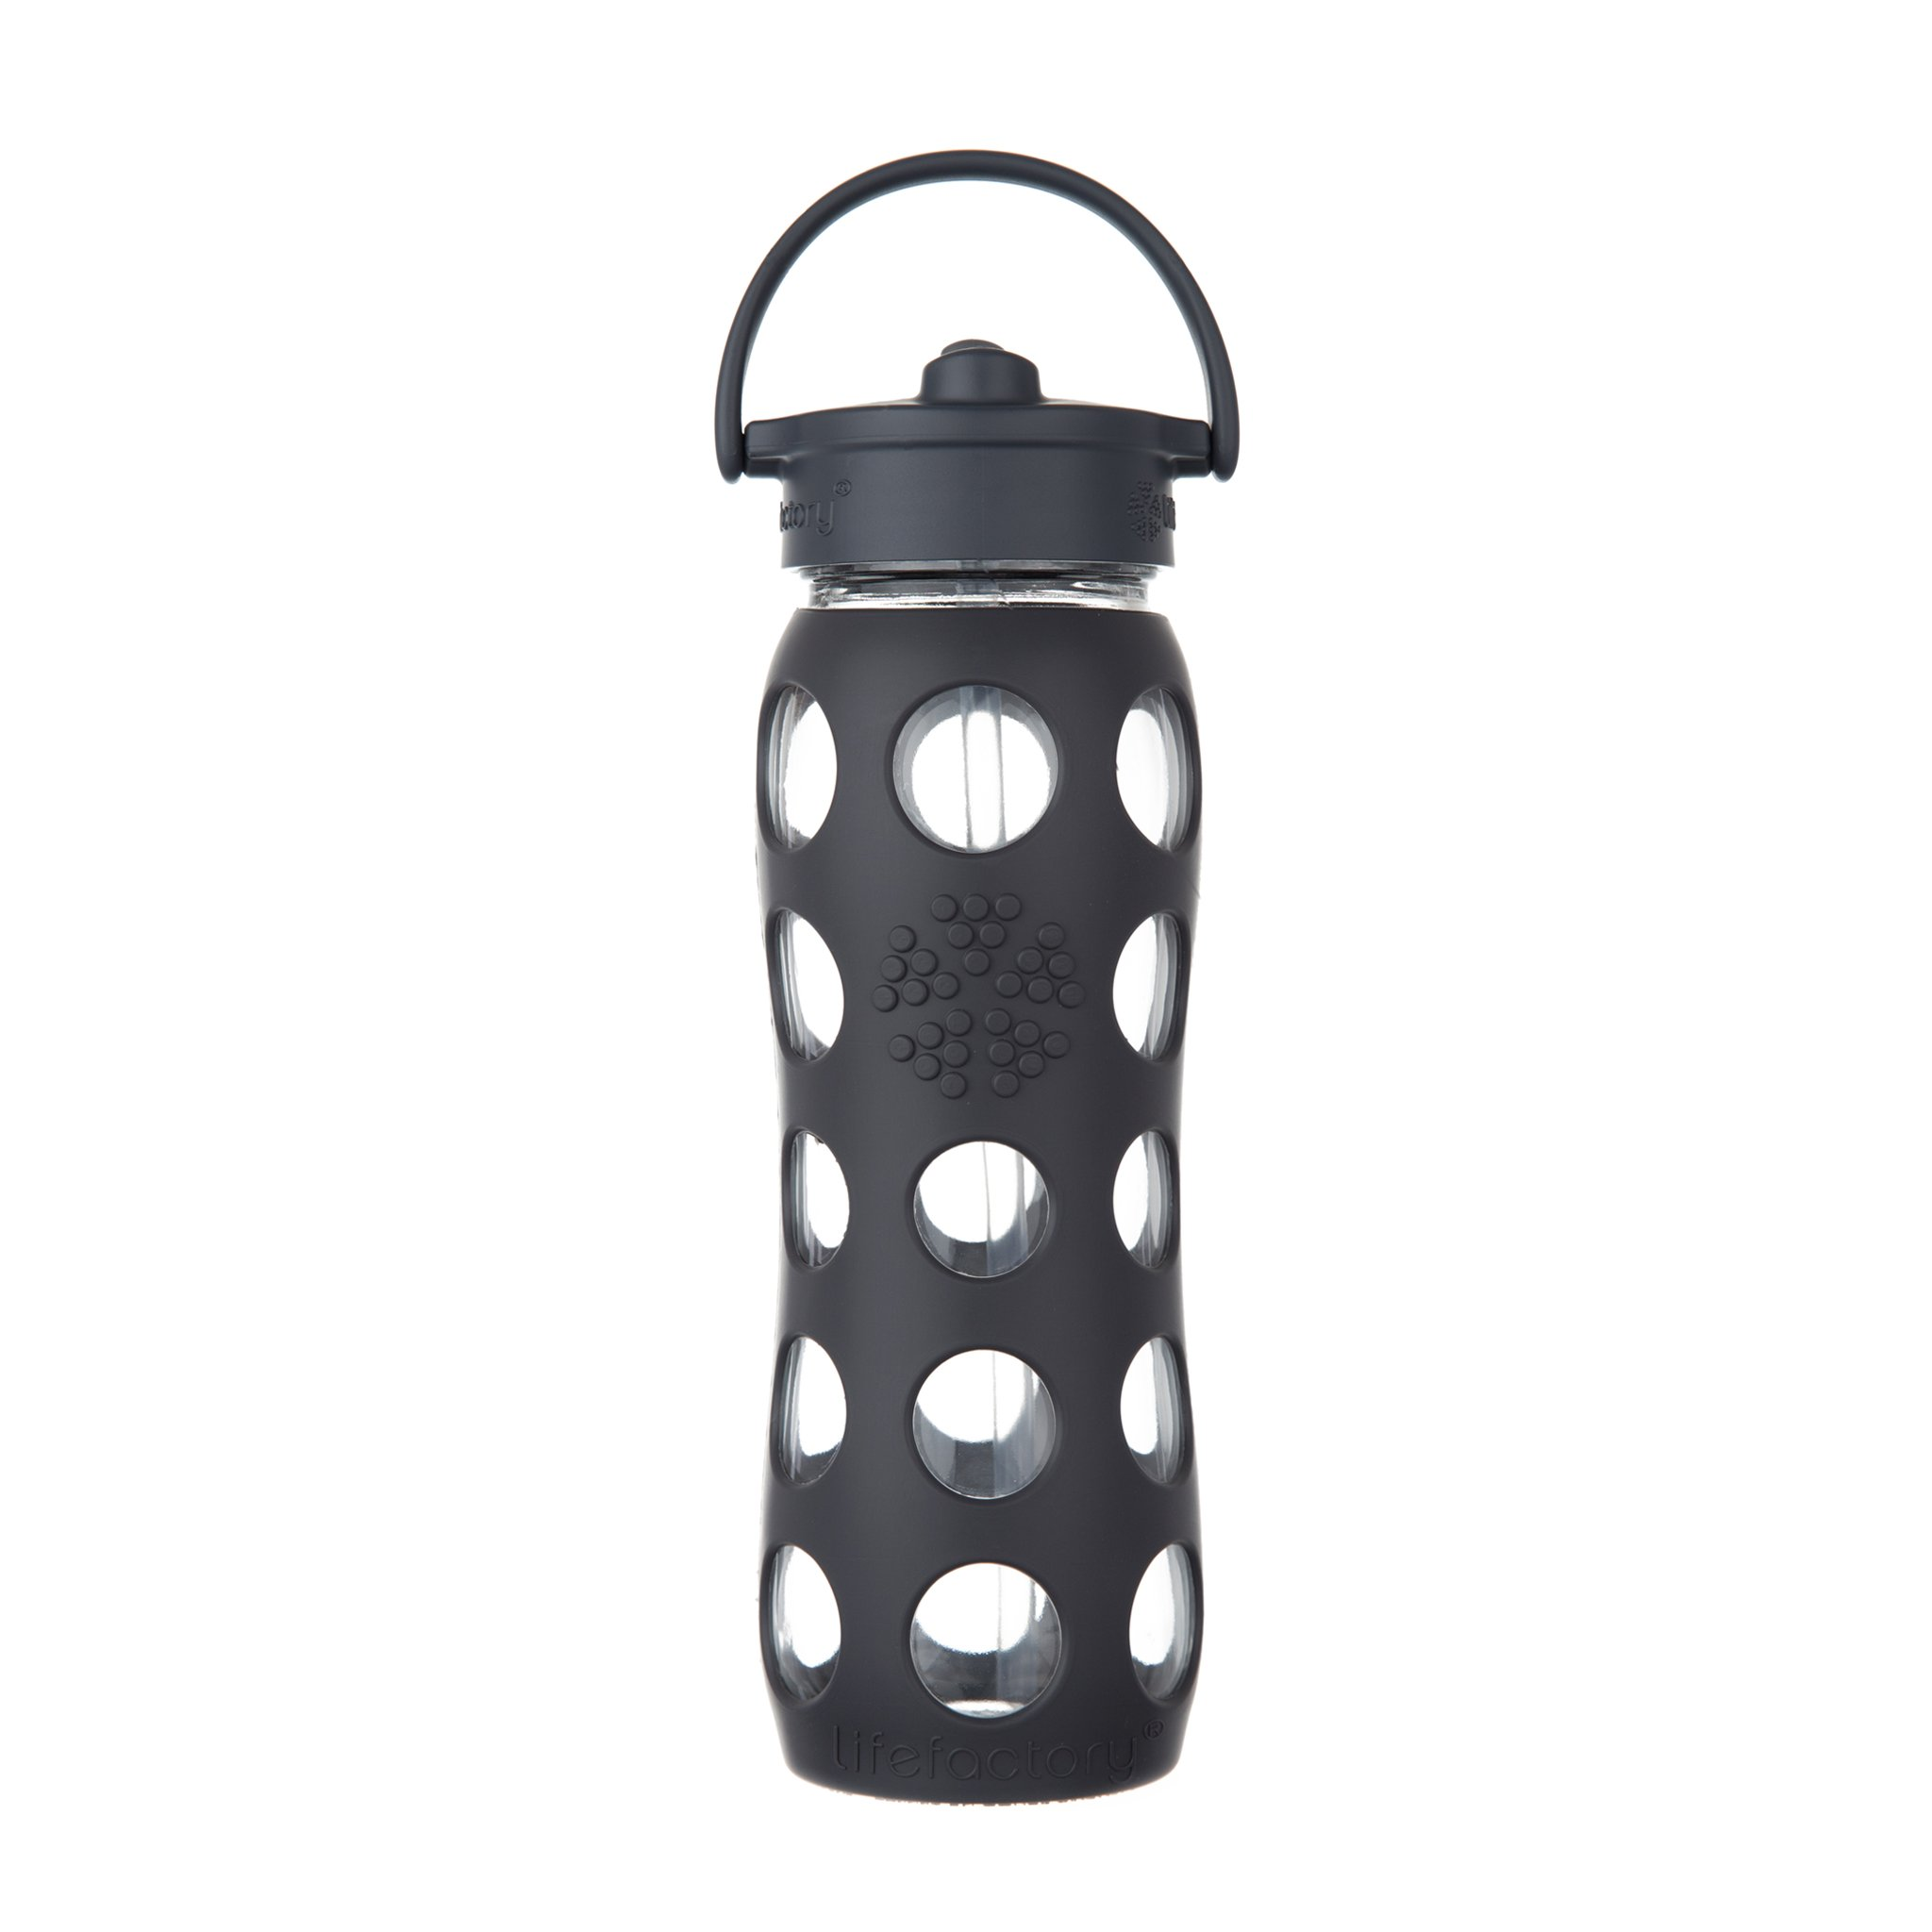 Lifefactory Unisex Glass Bottle with Straw Cap 12 oz.